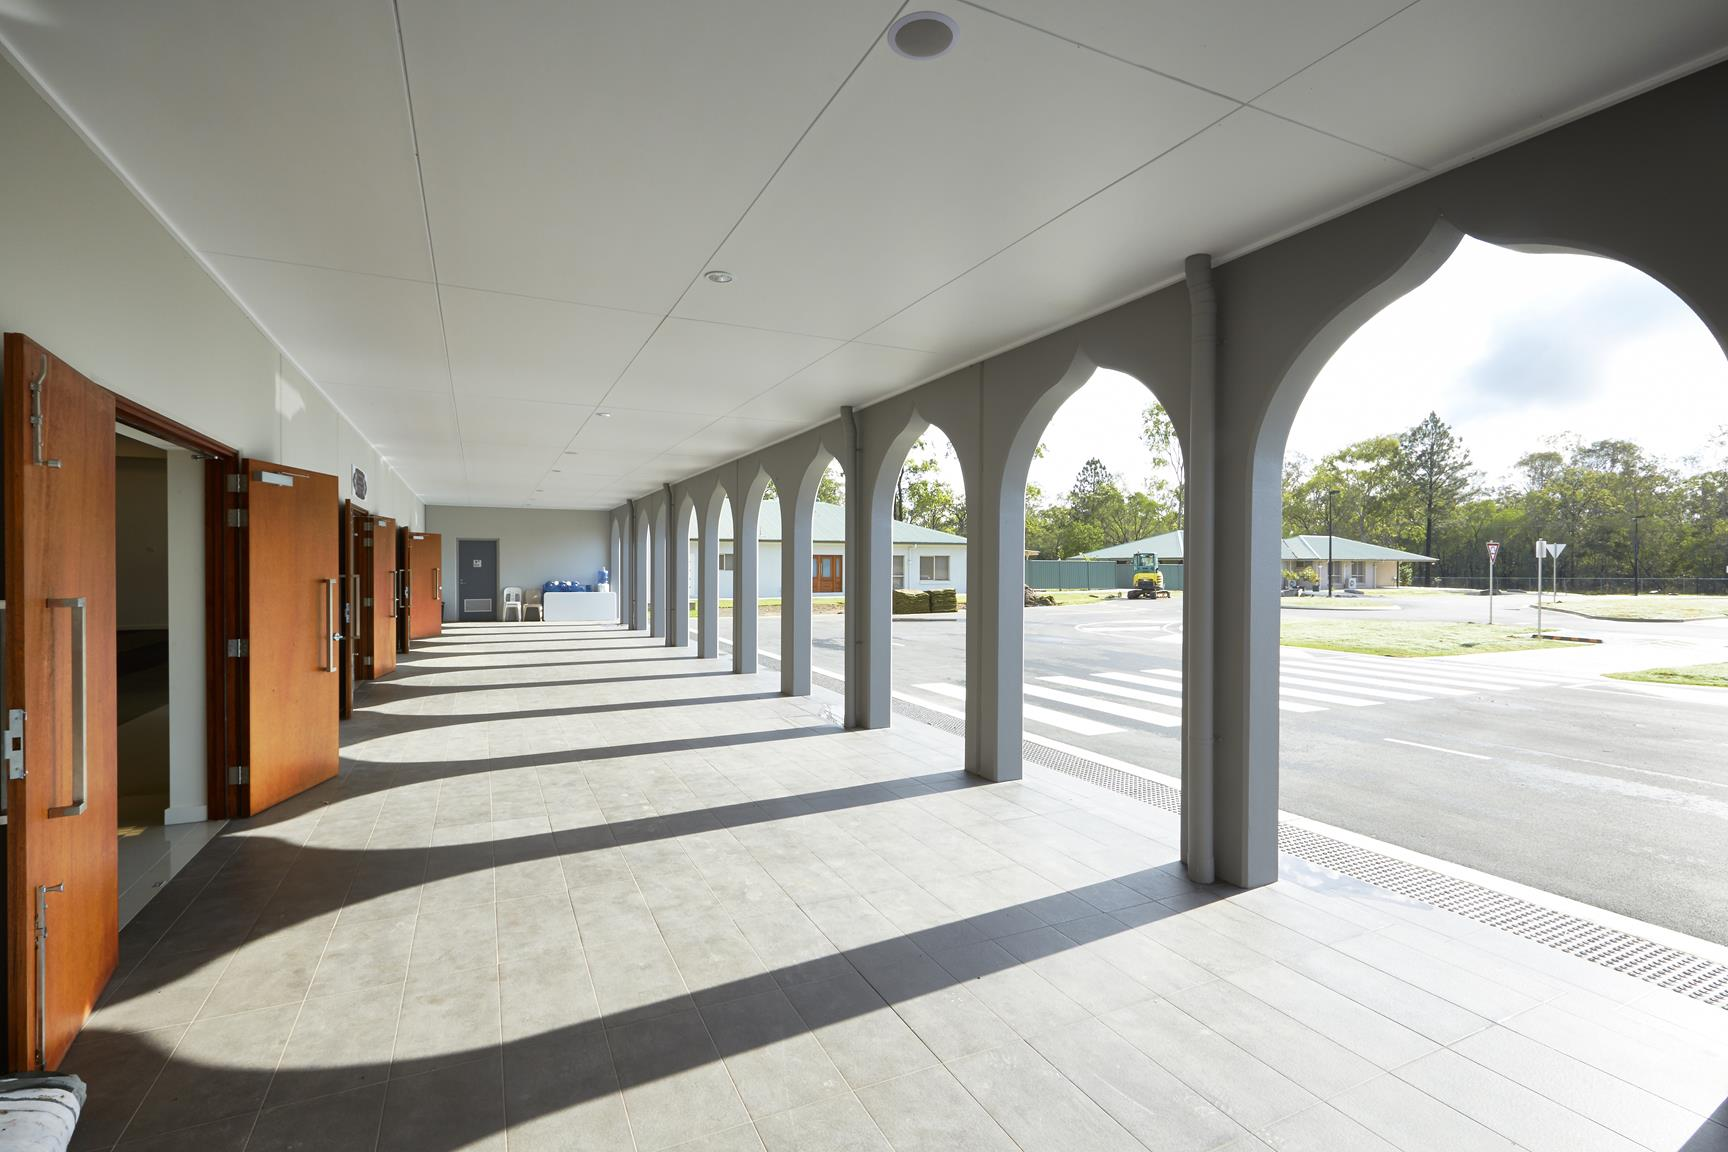 Mosque_stockleigh (5)